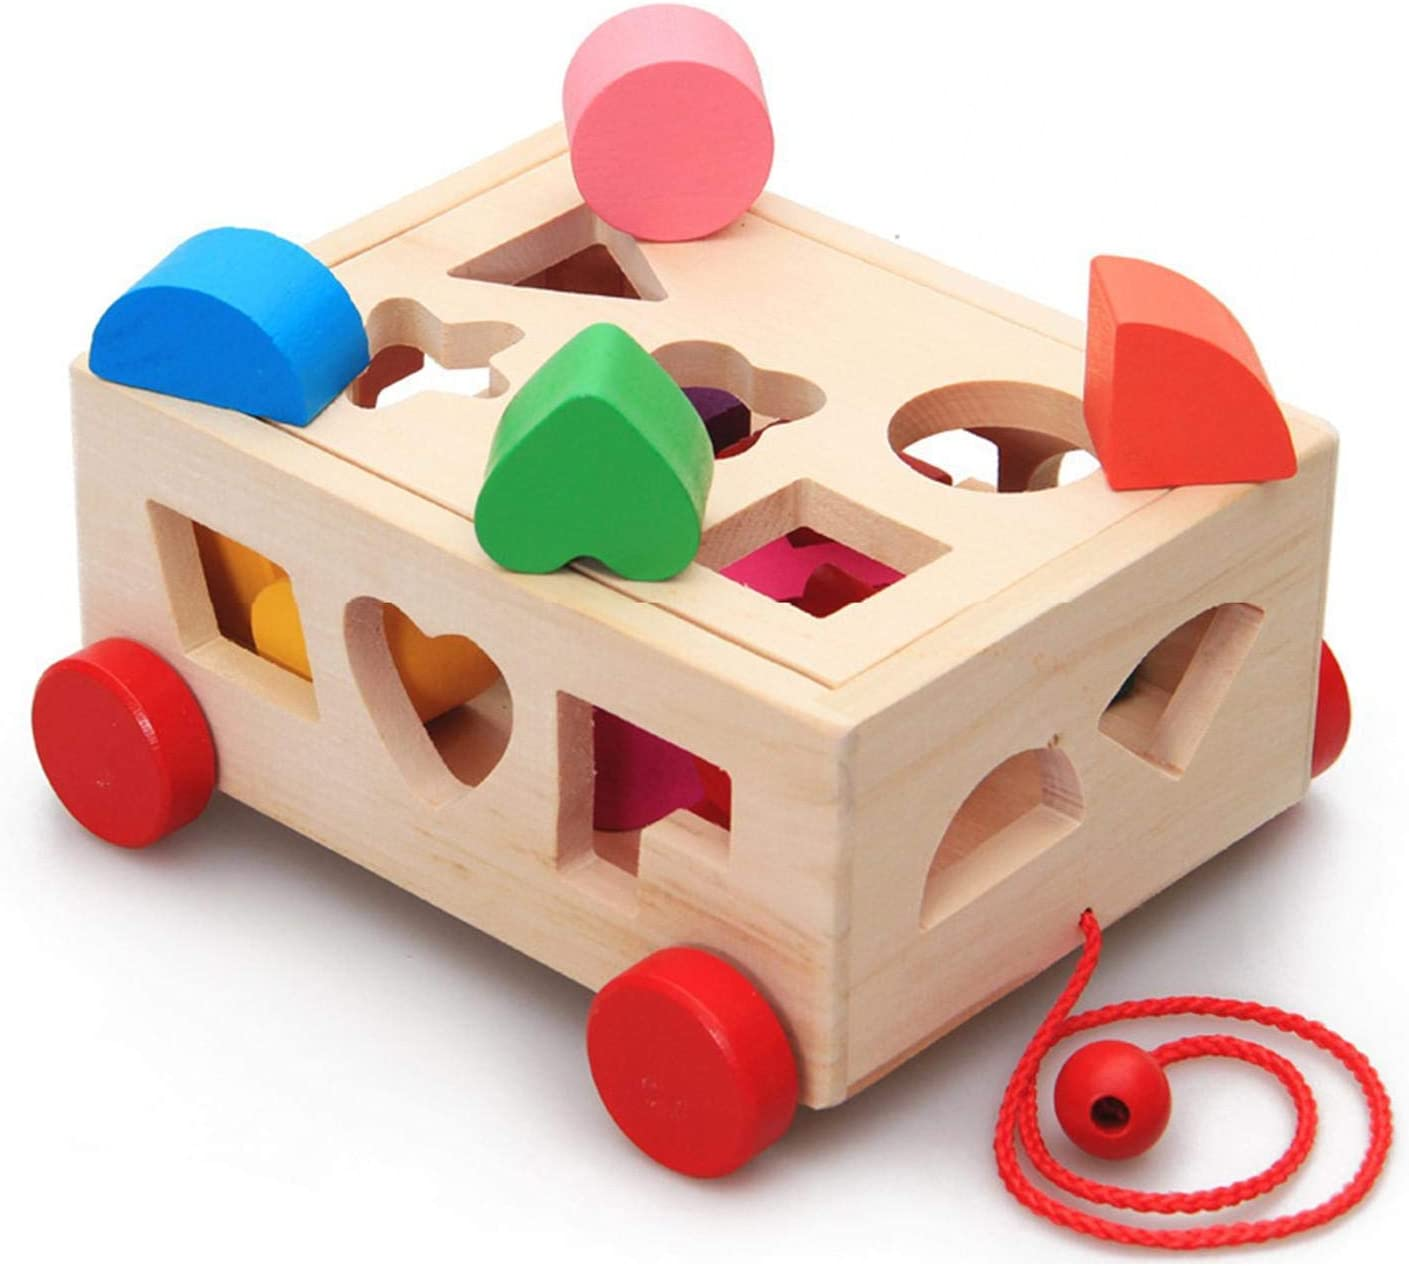 Beesuya Wooden Shape Sorter for 1 Year Old Montessori Toddler Educational Toys Shape Sorter for Toddlers